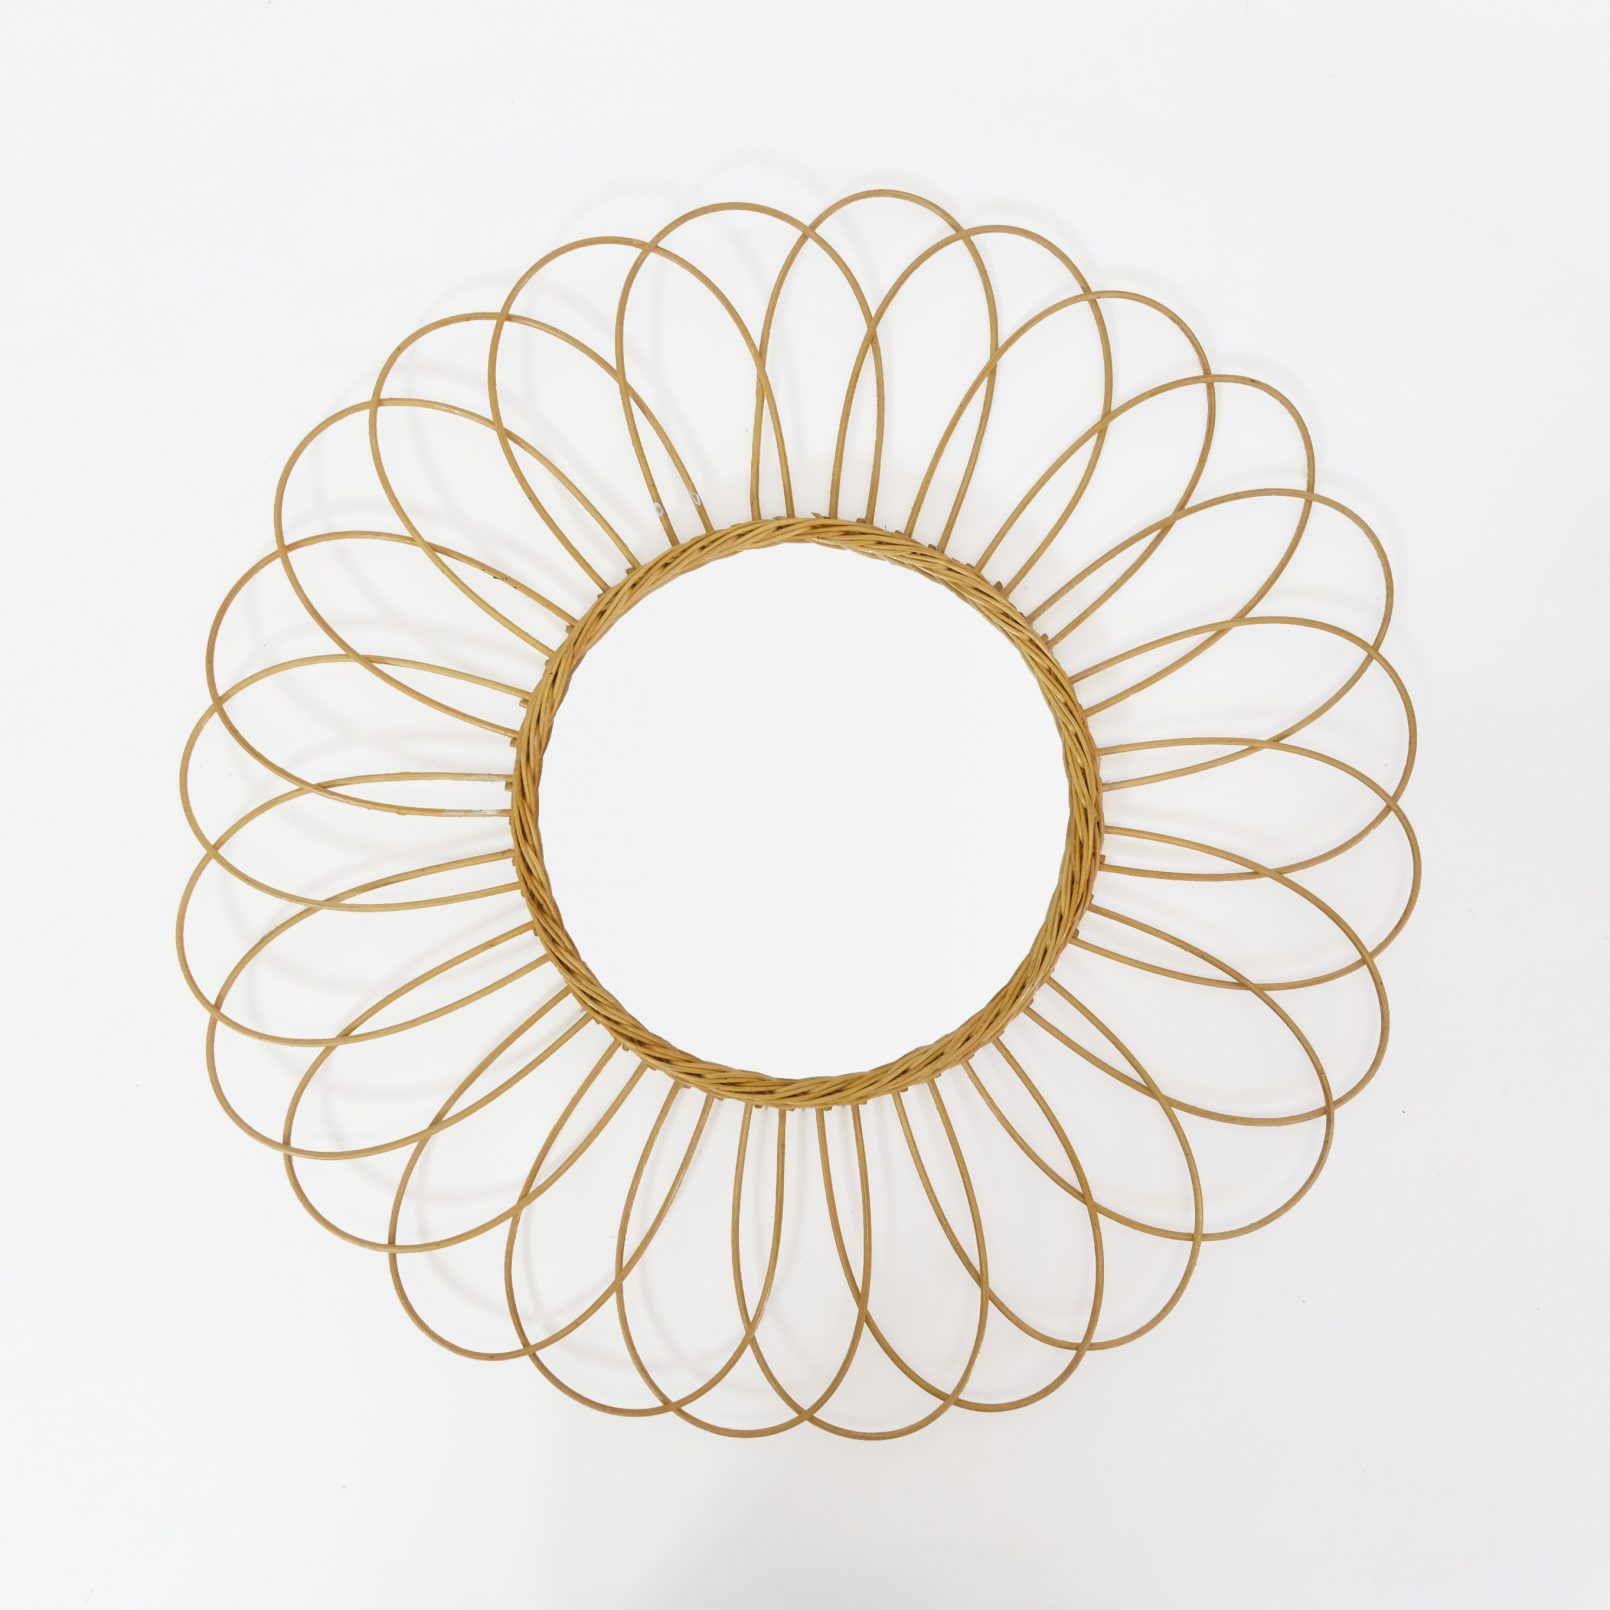 Wicker mirror from the 1960s-1970s, 56 cm.